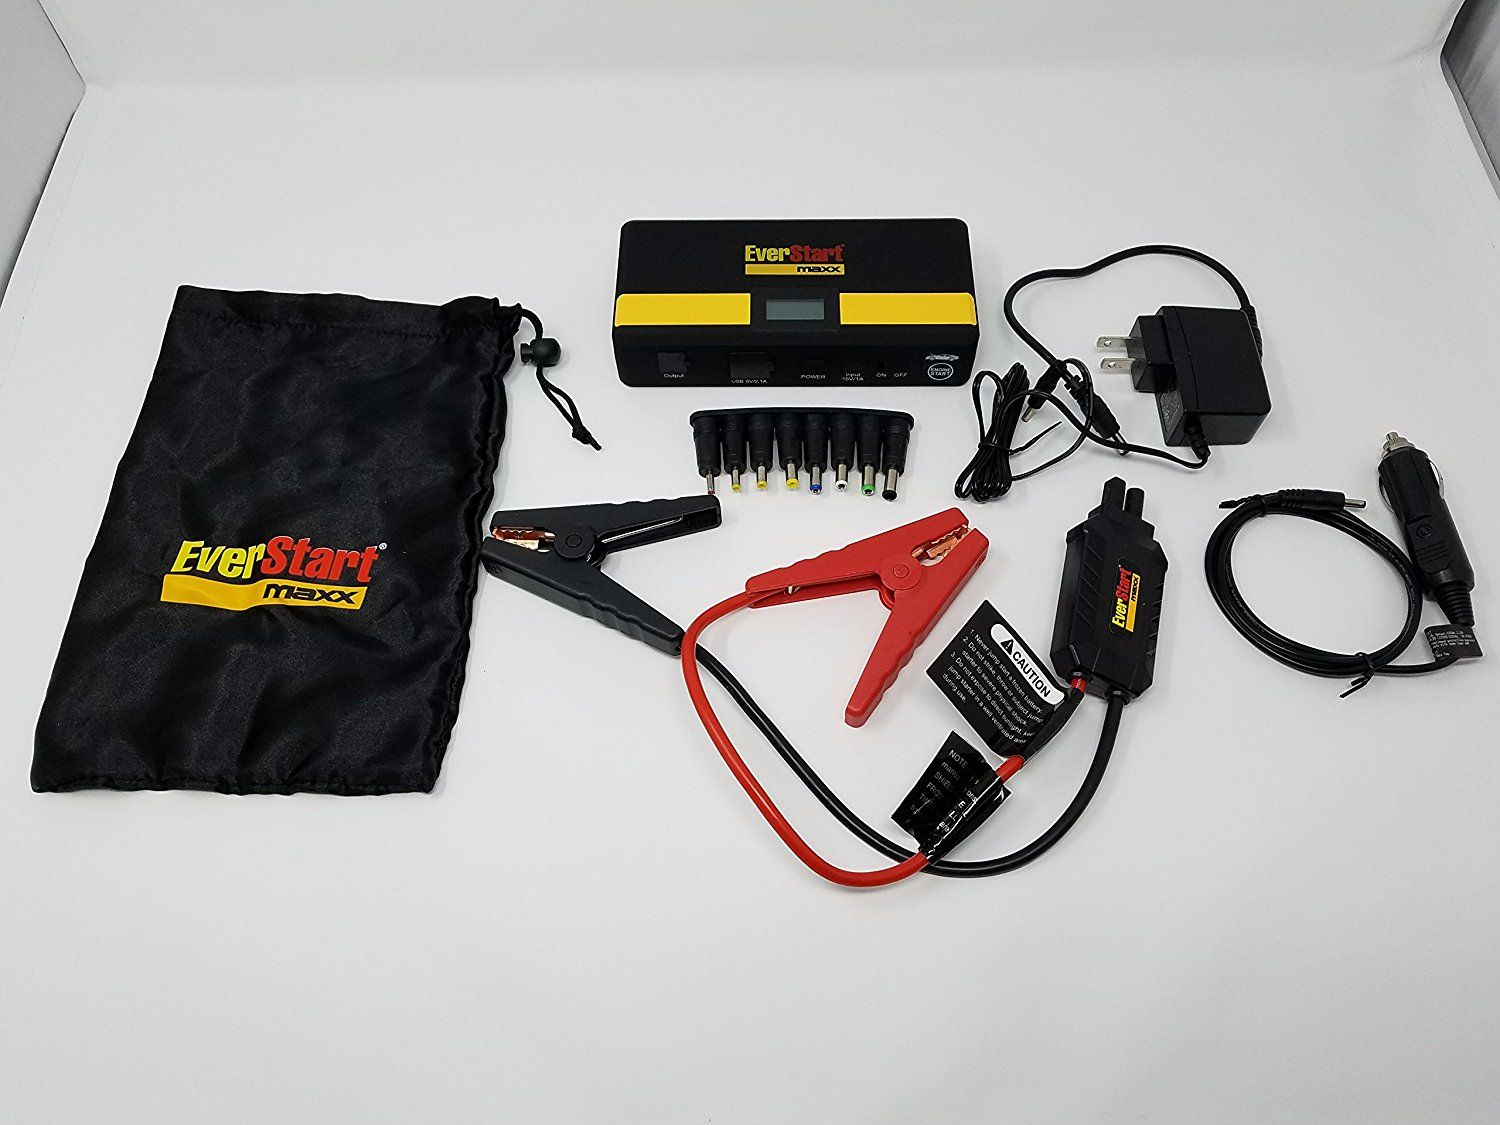 Everstart Maxx Jump Starter And Battery Charger Review